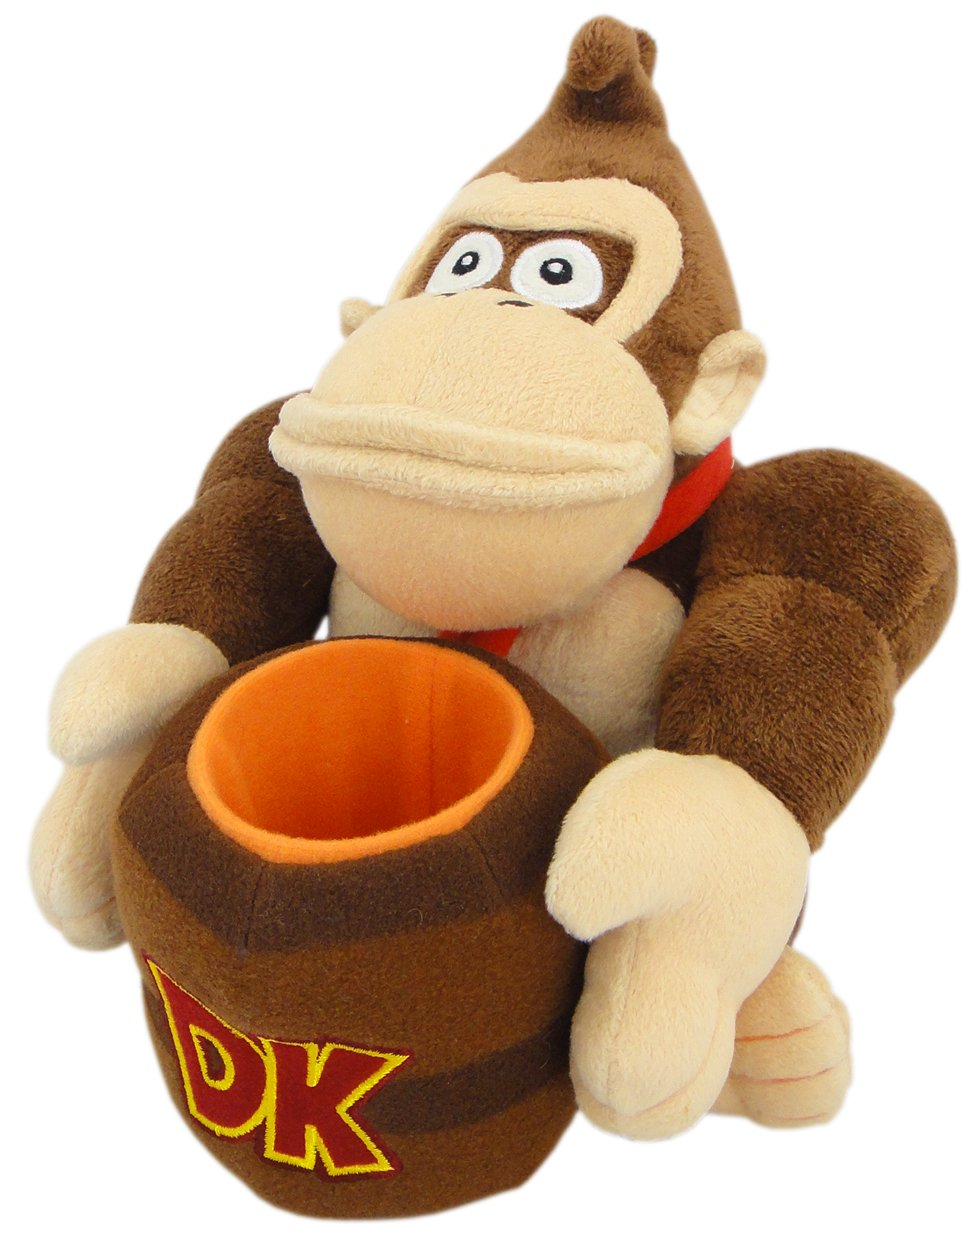 Amazon.com: Stuffed toy accessory case (Donkey Kong) (japan import): Video Games